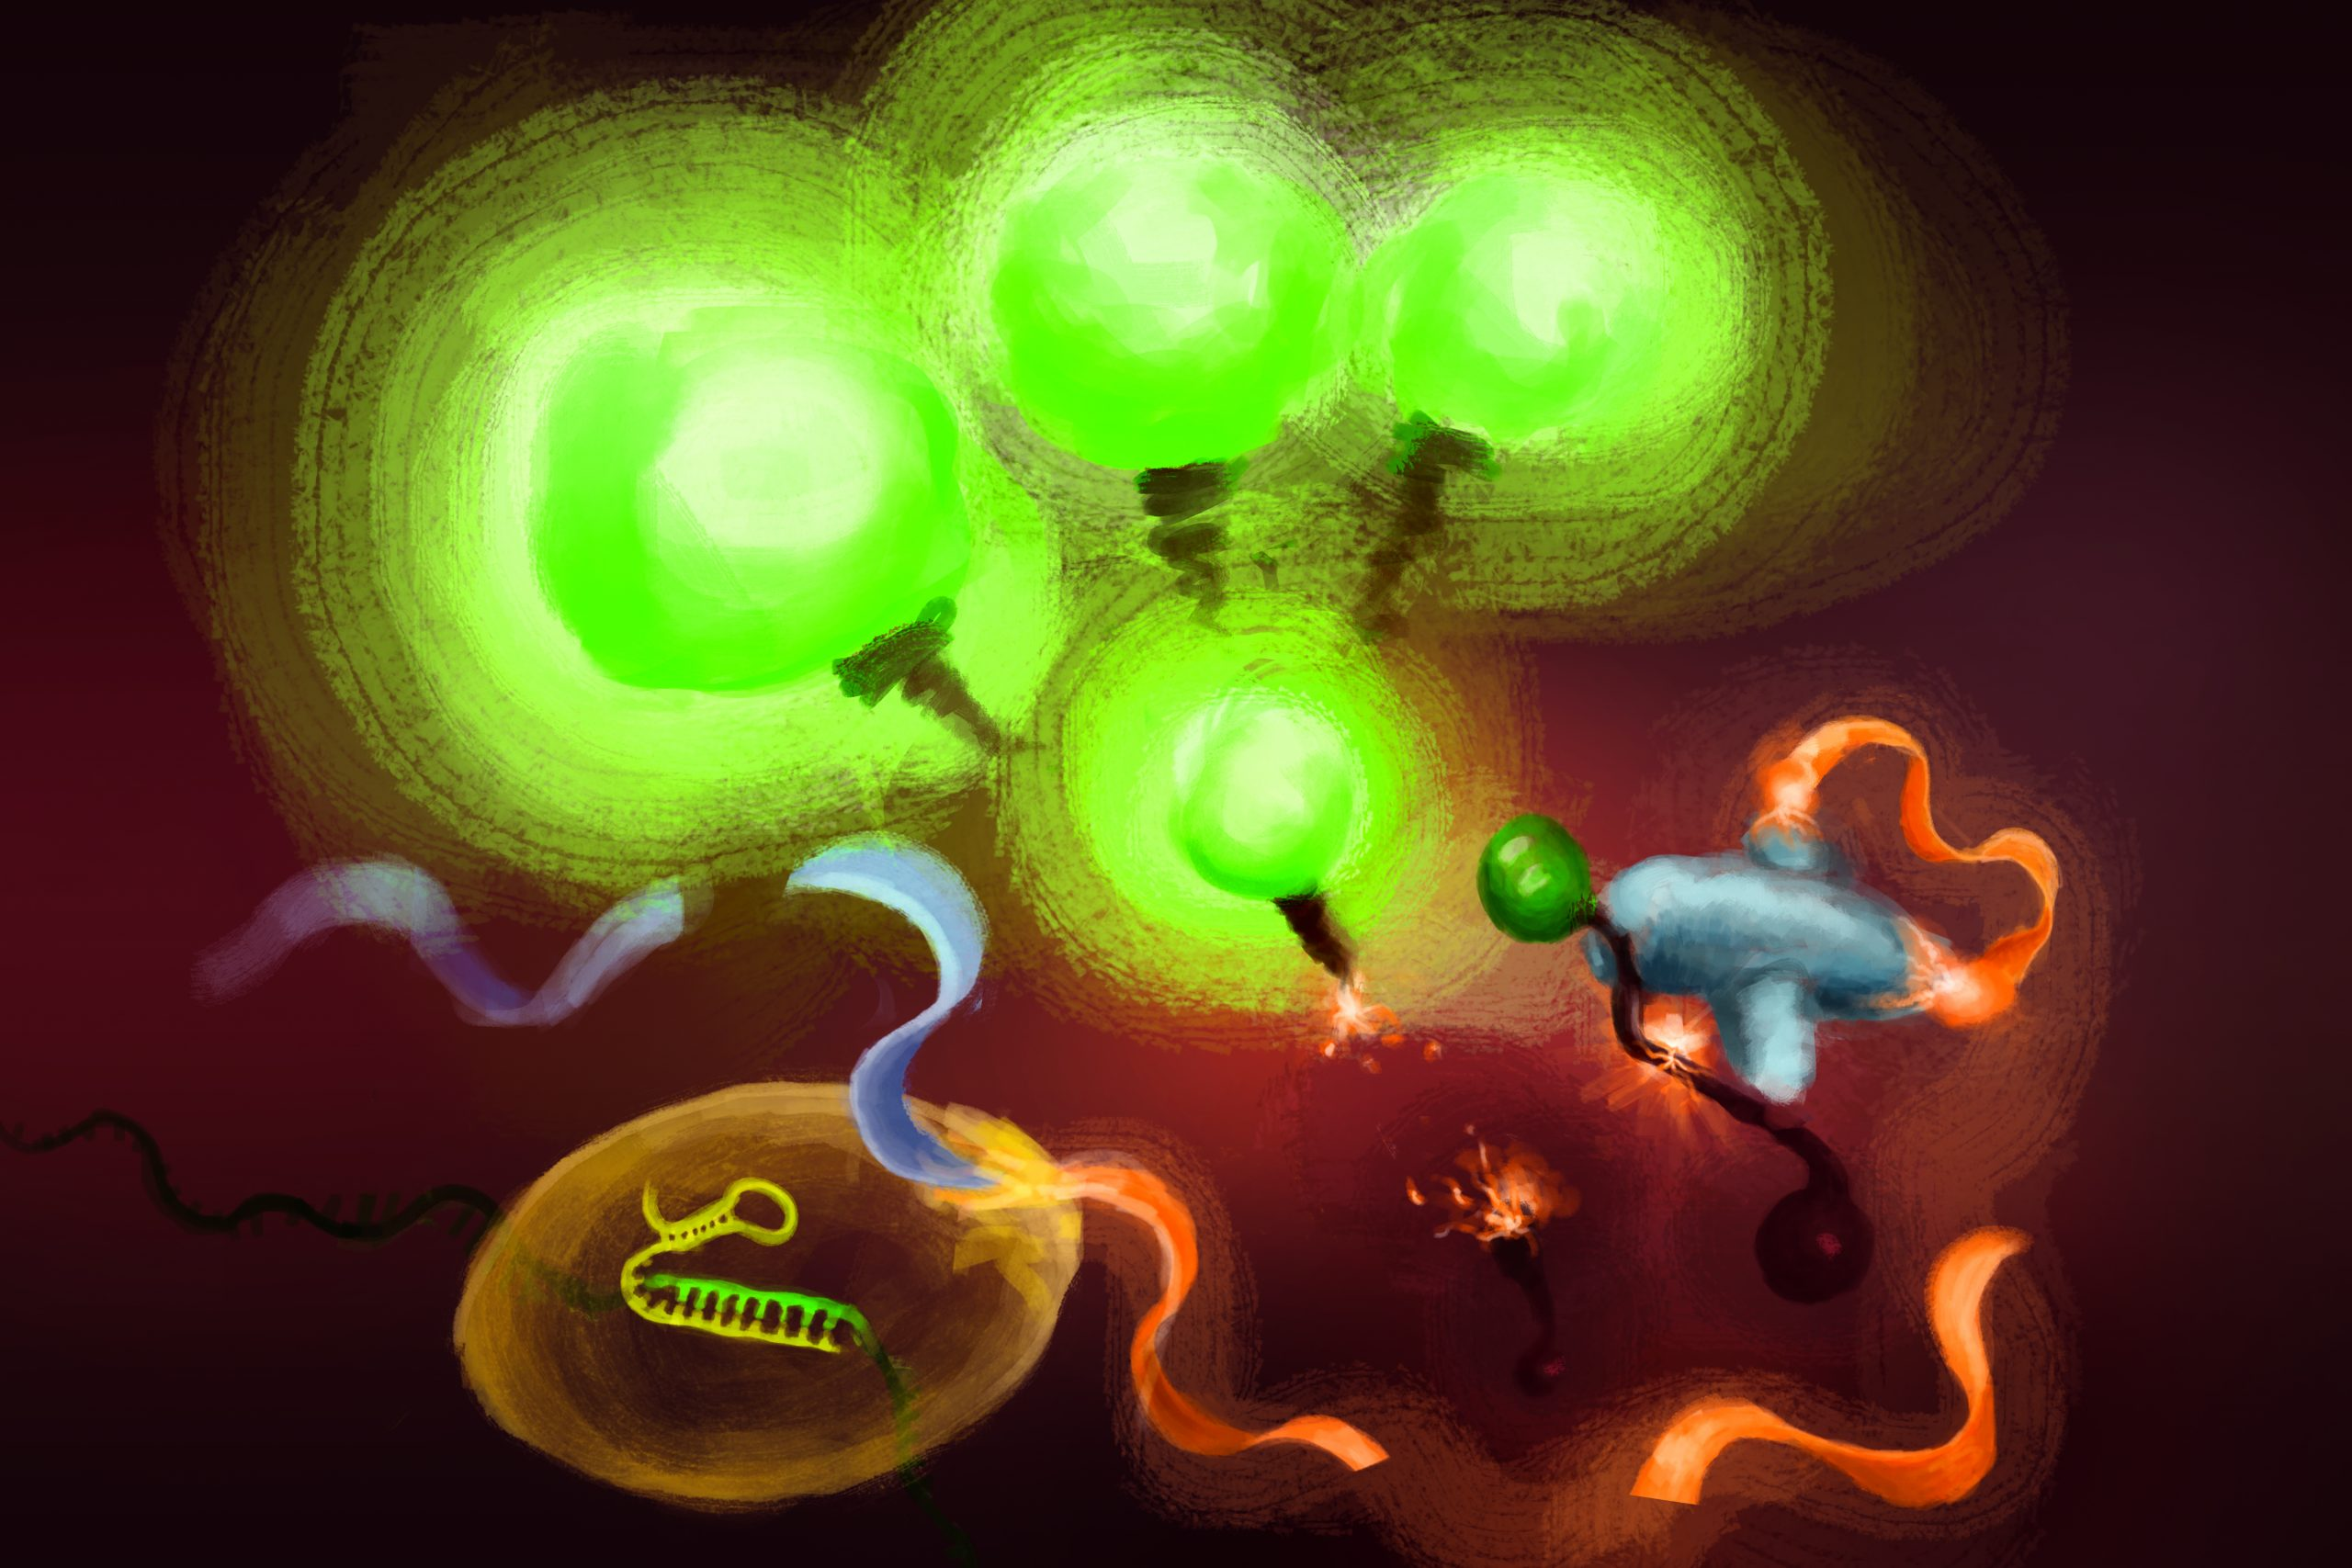 illustration shows RNA being cut by CRISPR enzymes and bright green light emitted